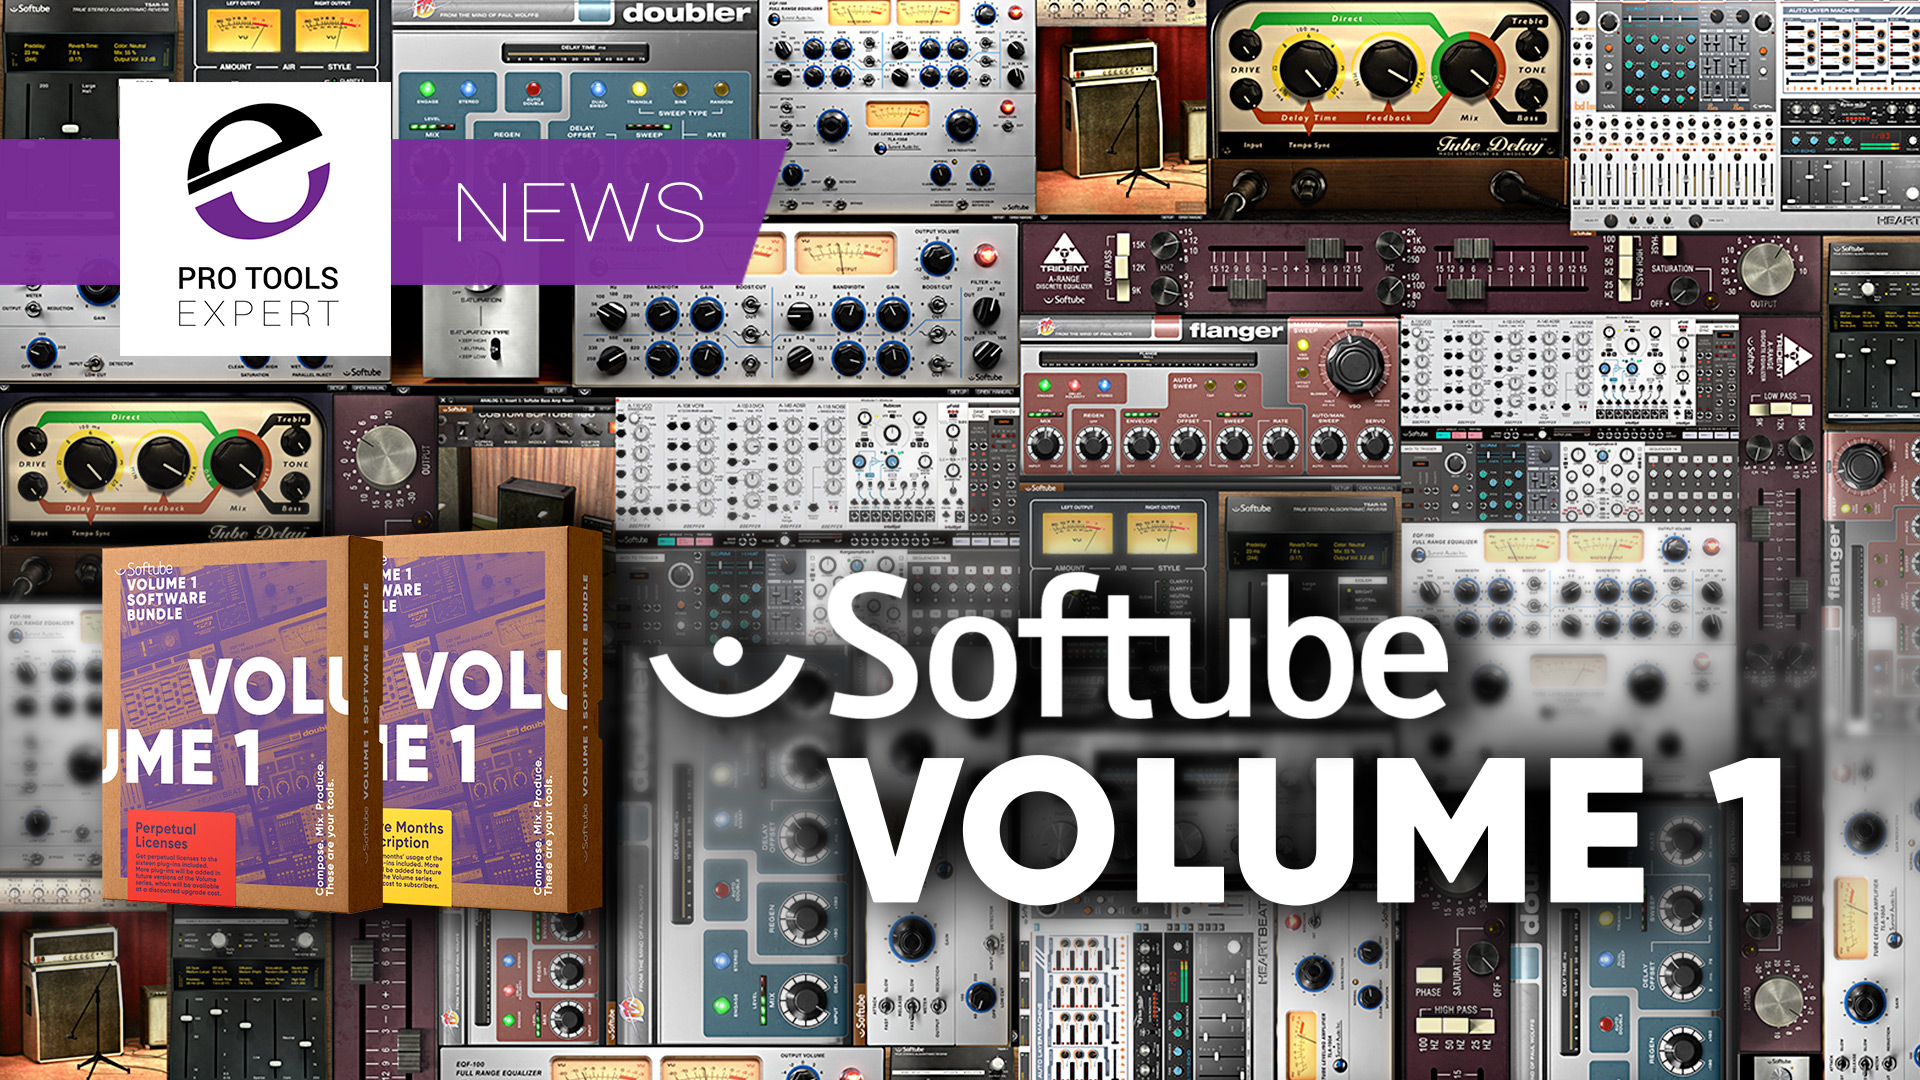 Softube Volume 1 - New 16 Plug-in Bundle With Low Cost